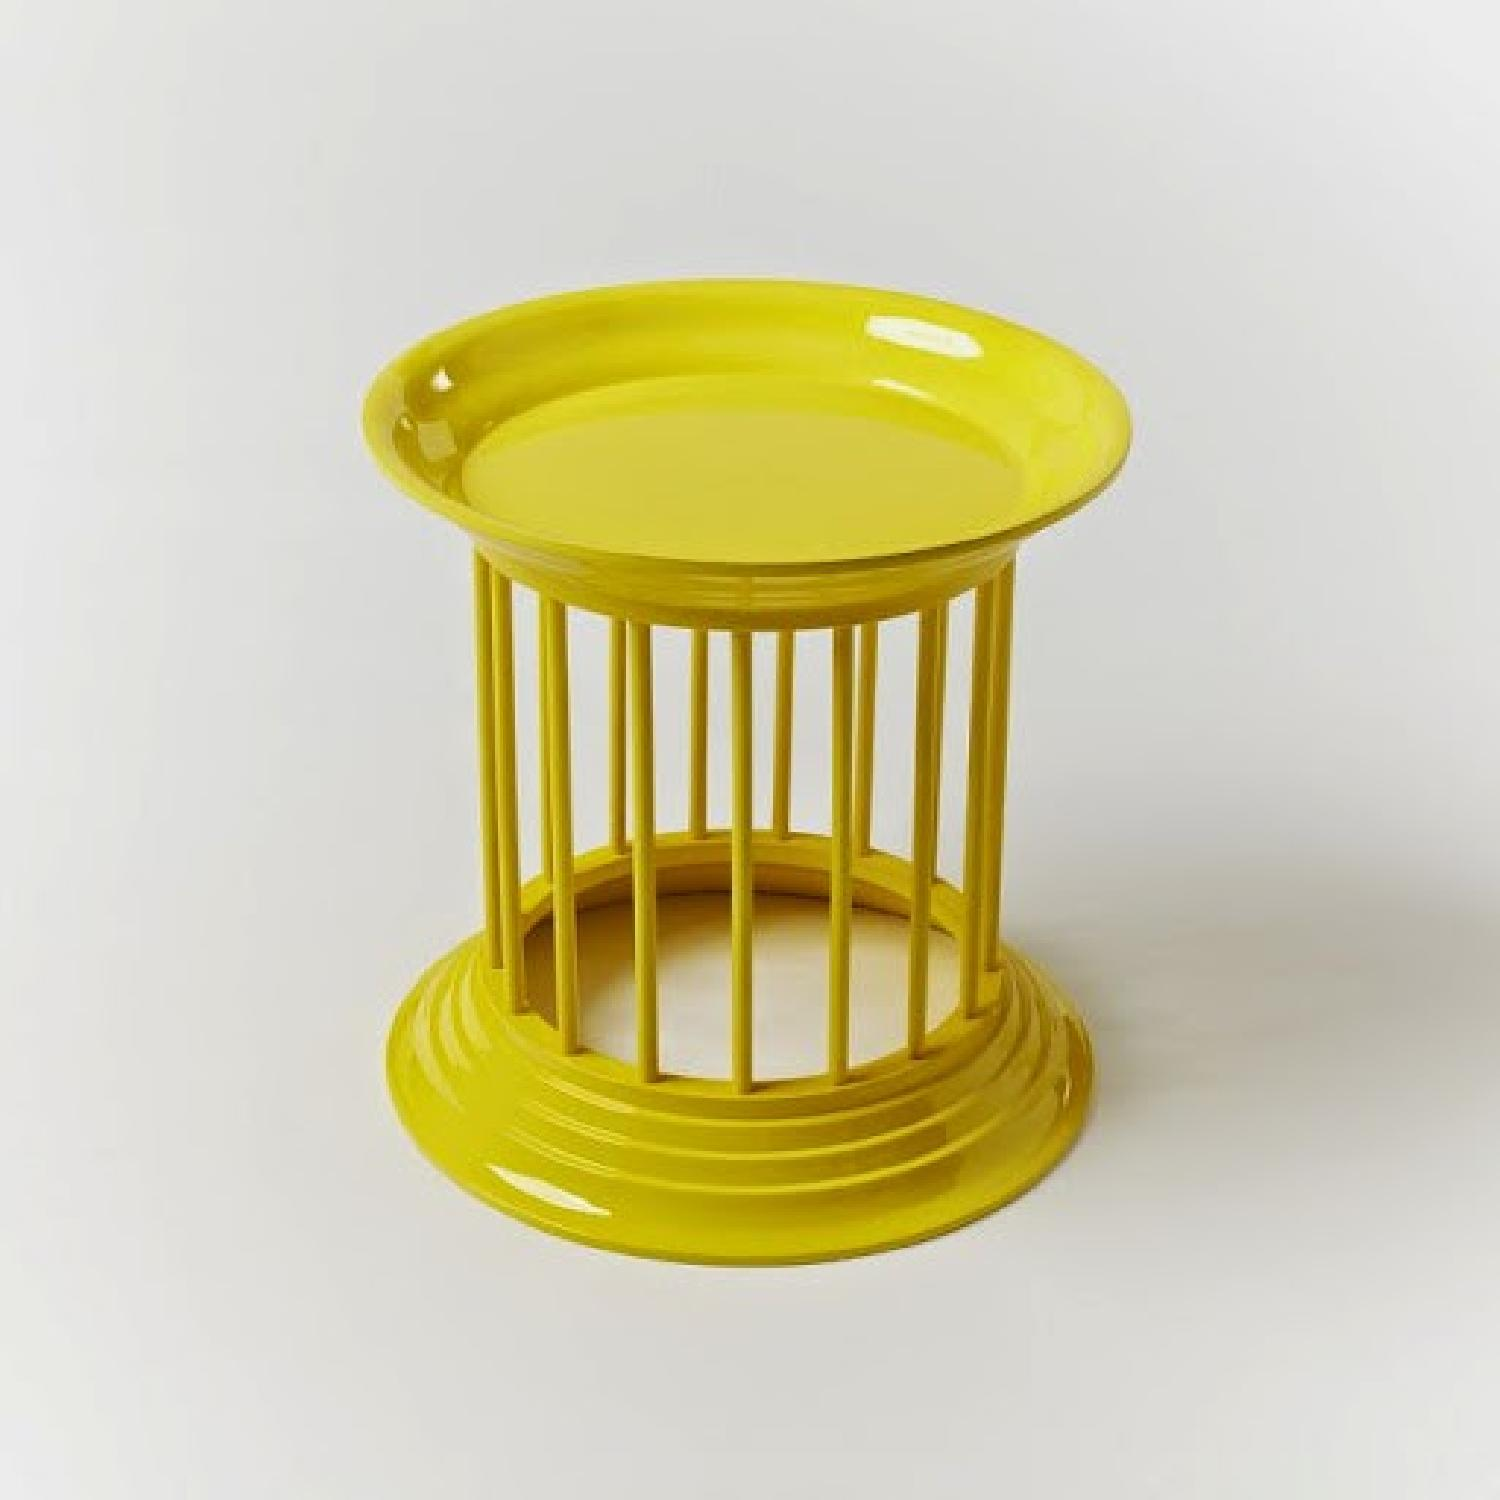 West Elm Gates Gates Lacquer Side Tables in Lemon Yellow-3